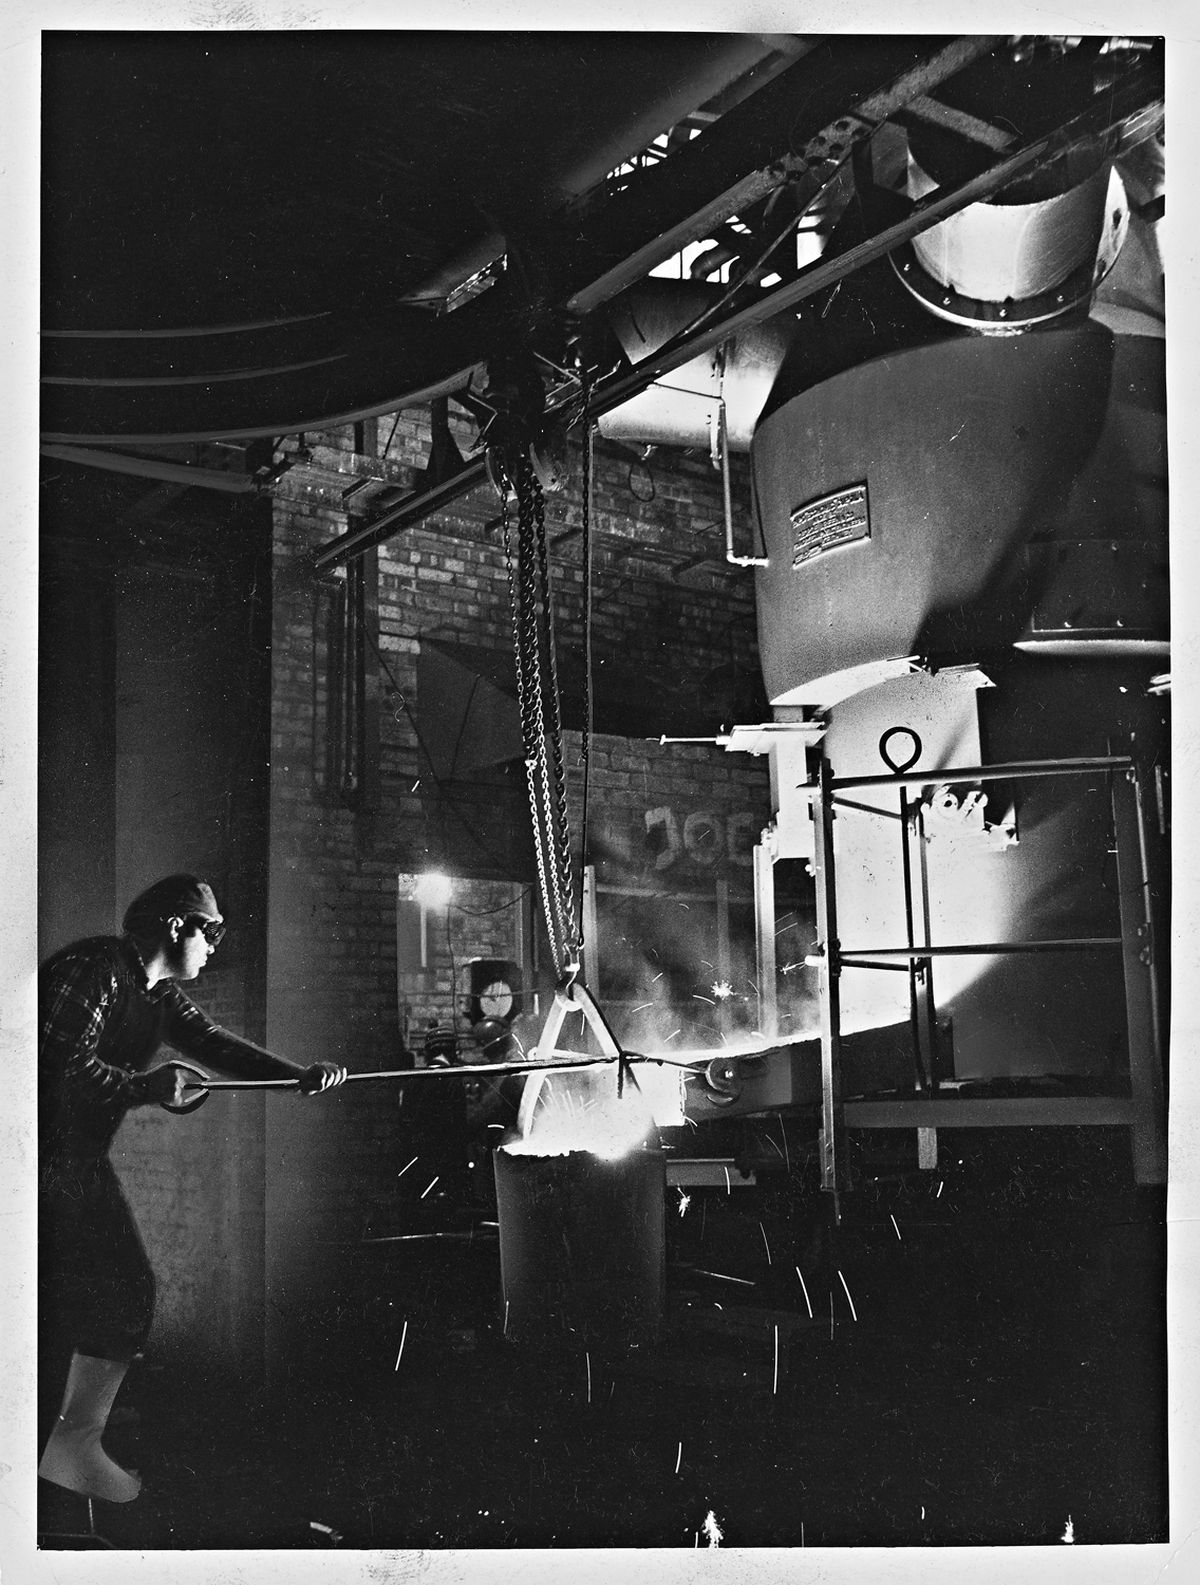 Serck Audco Valves Ltd, Newport – February 18, 1972. One of the first iron foundries in Britain to be converted to natural gas.